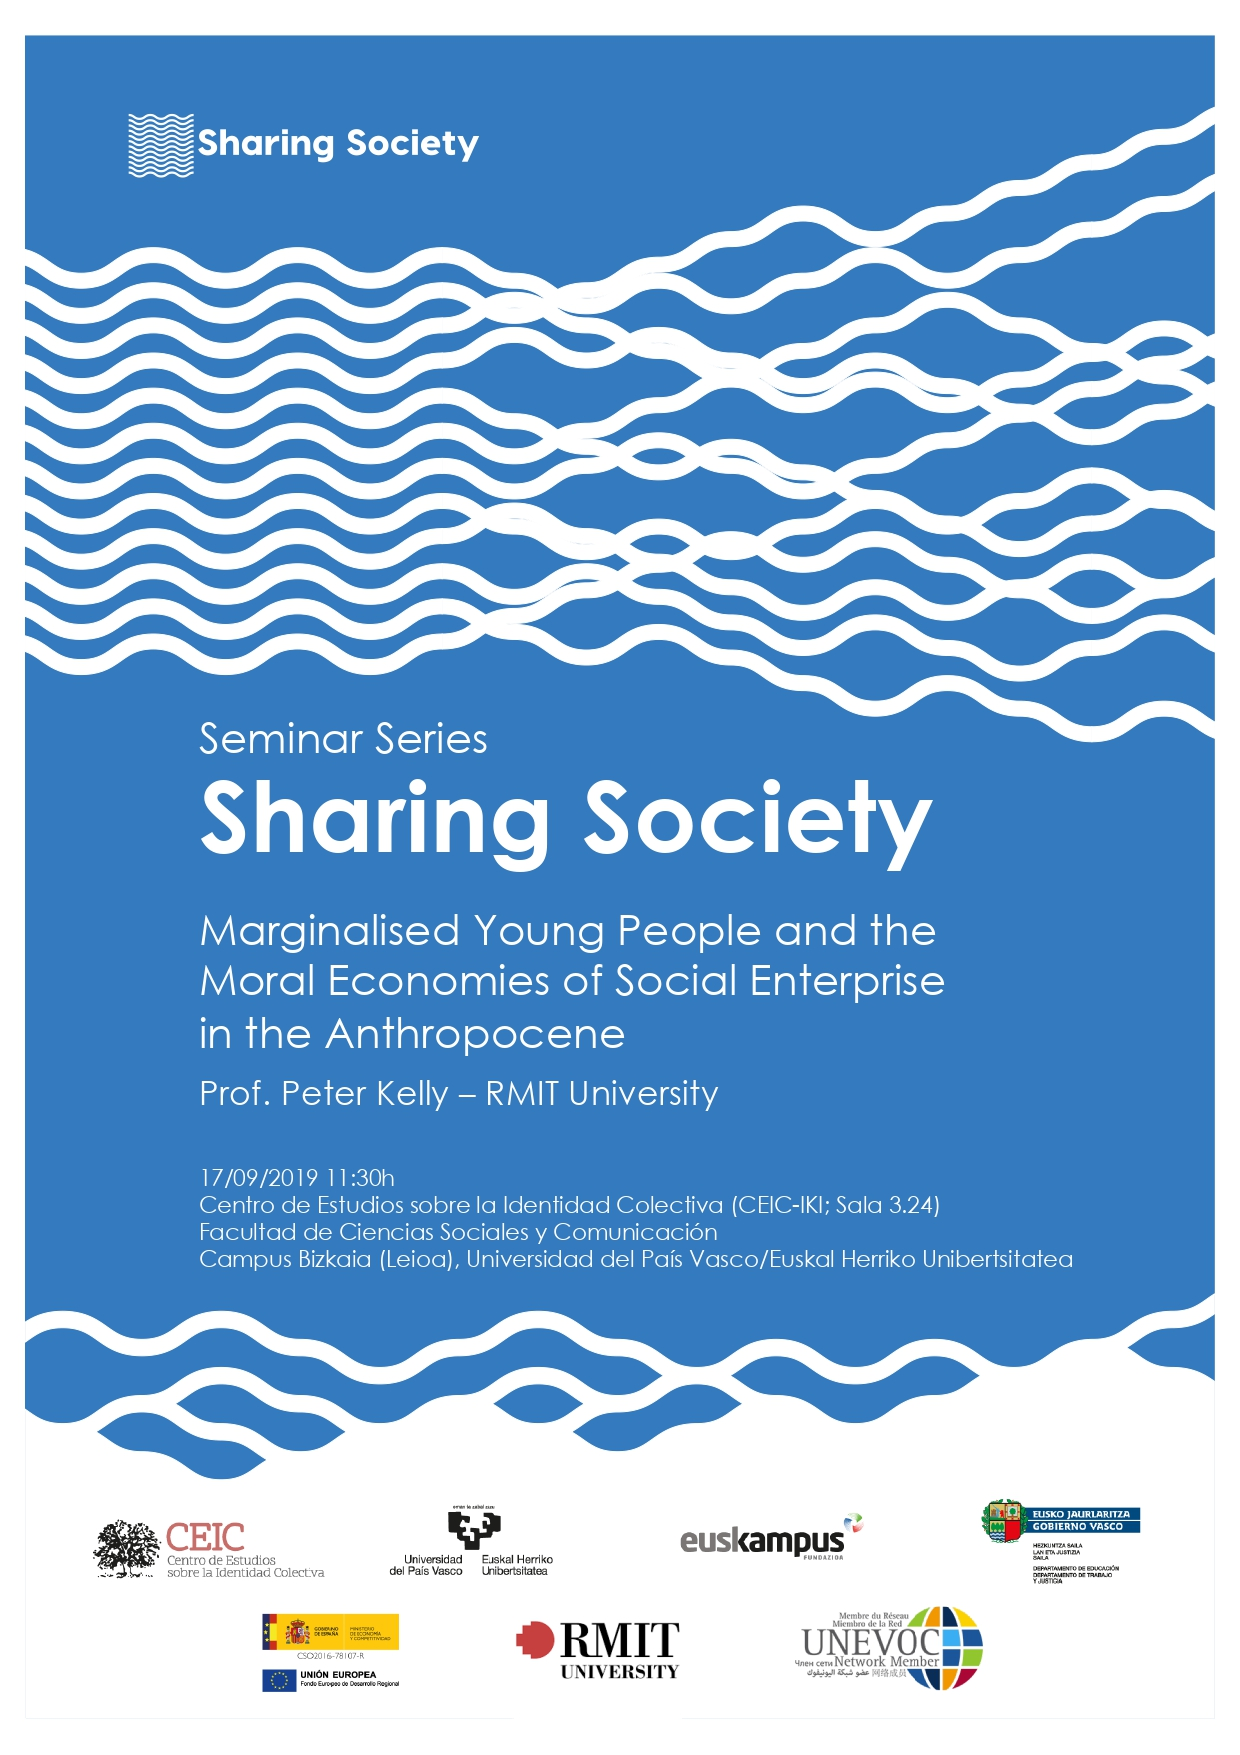 Marginalized Young People and the Moral Economies of Social Enterprise in the Anthropocene